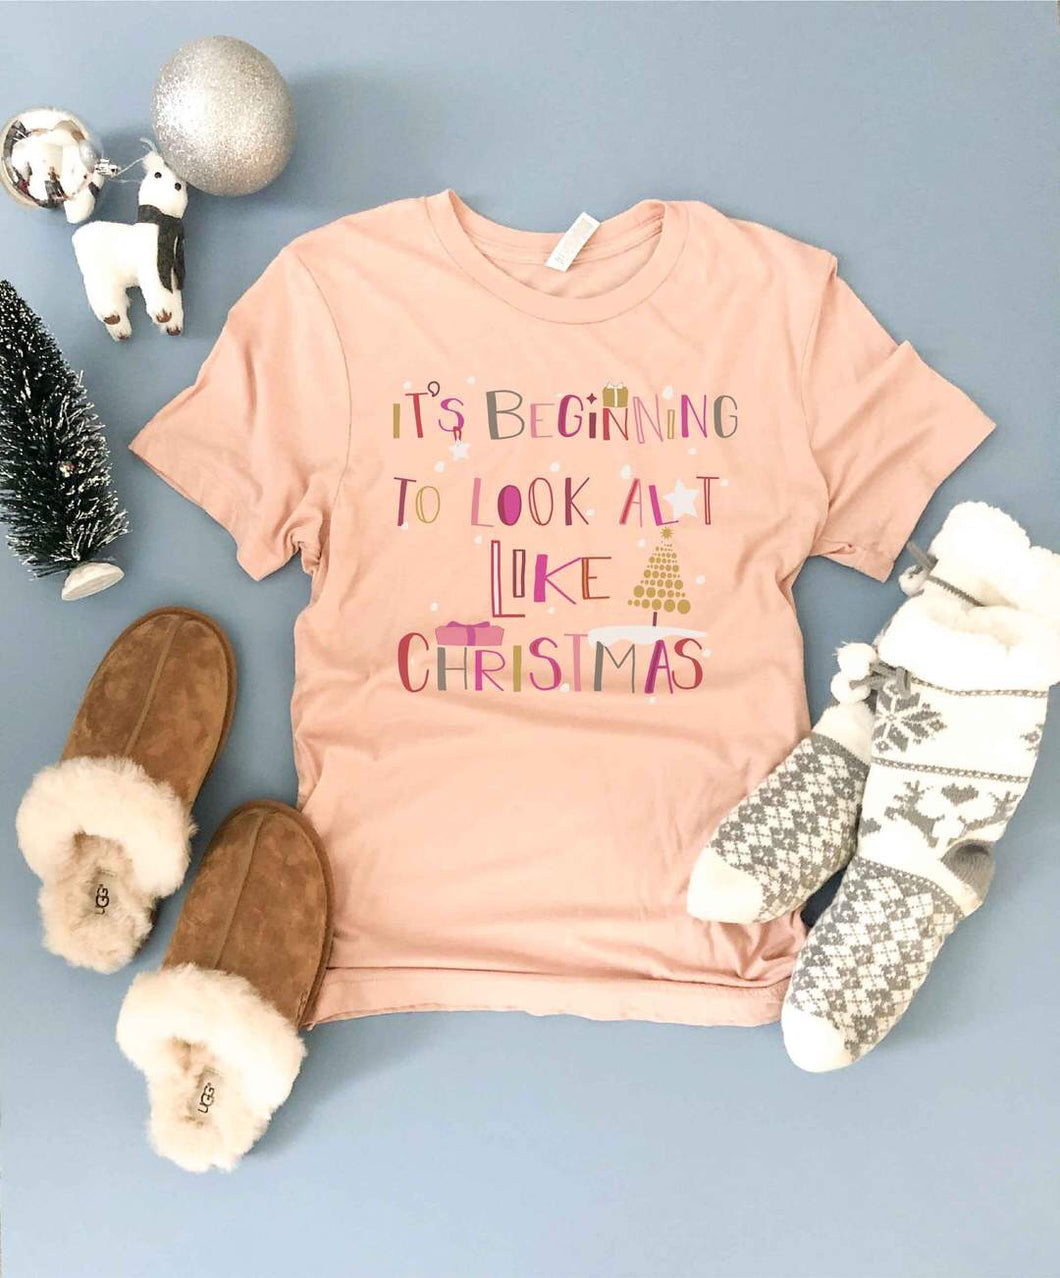 It's beginning to look a lot like Christmas Tee & Sweatshirt